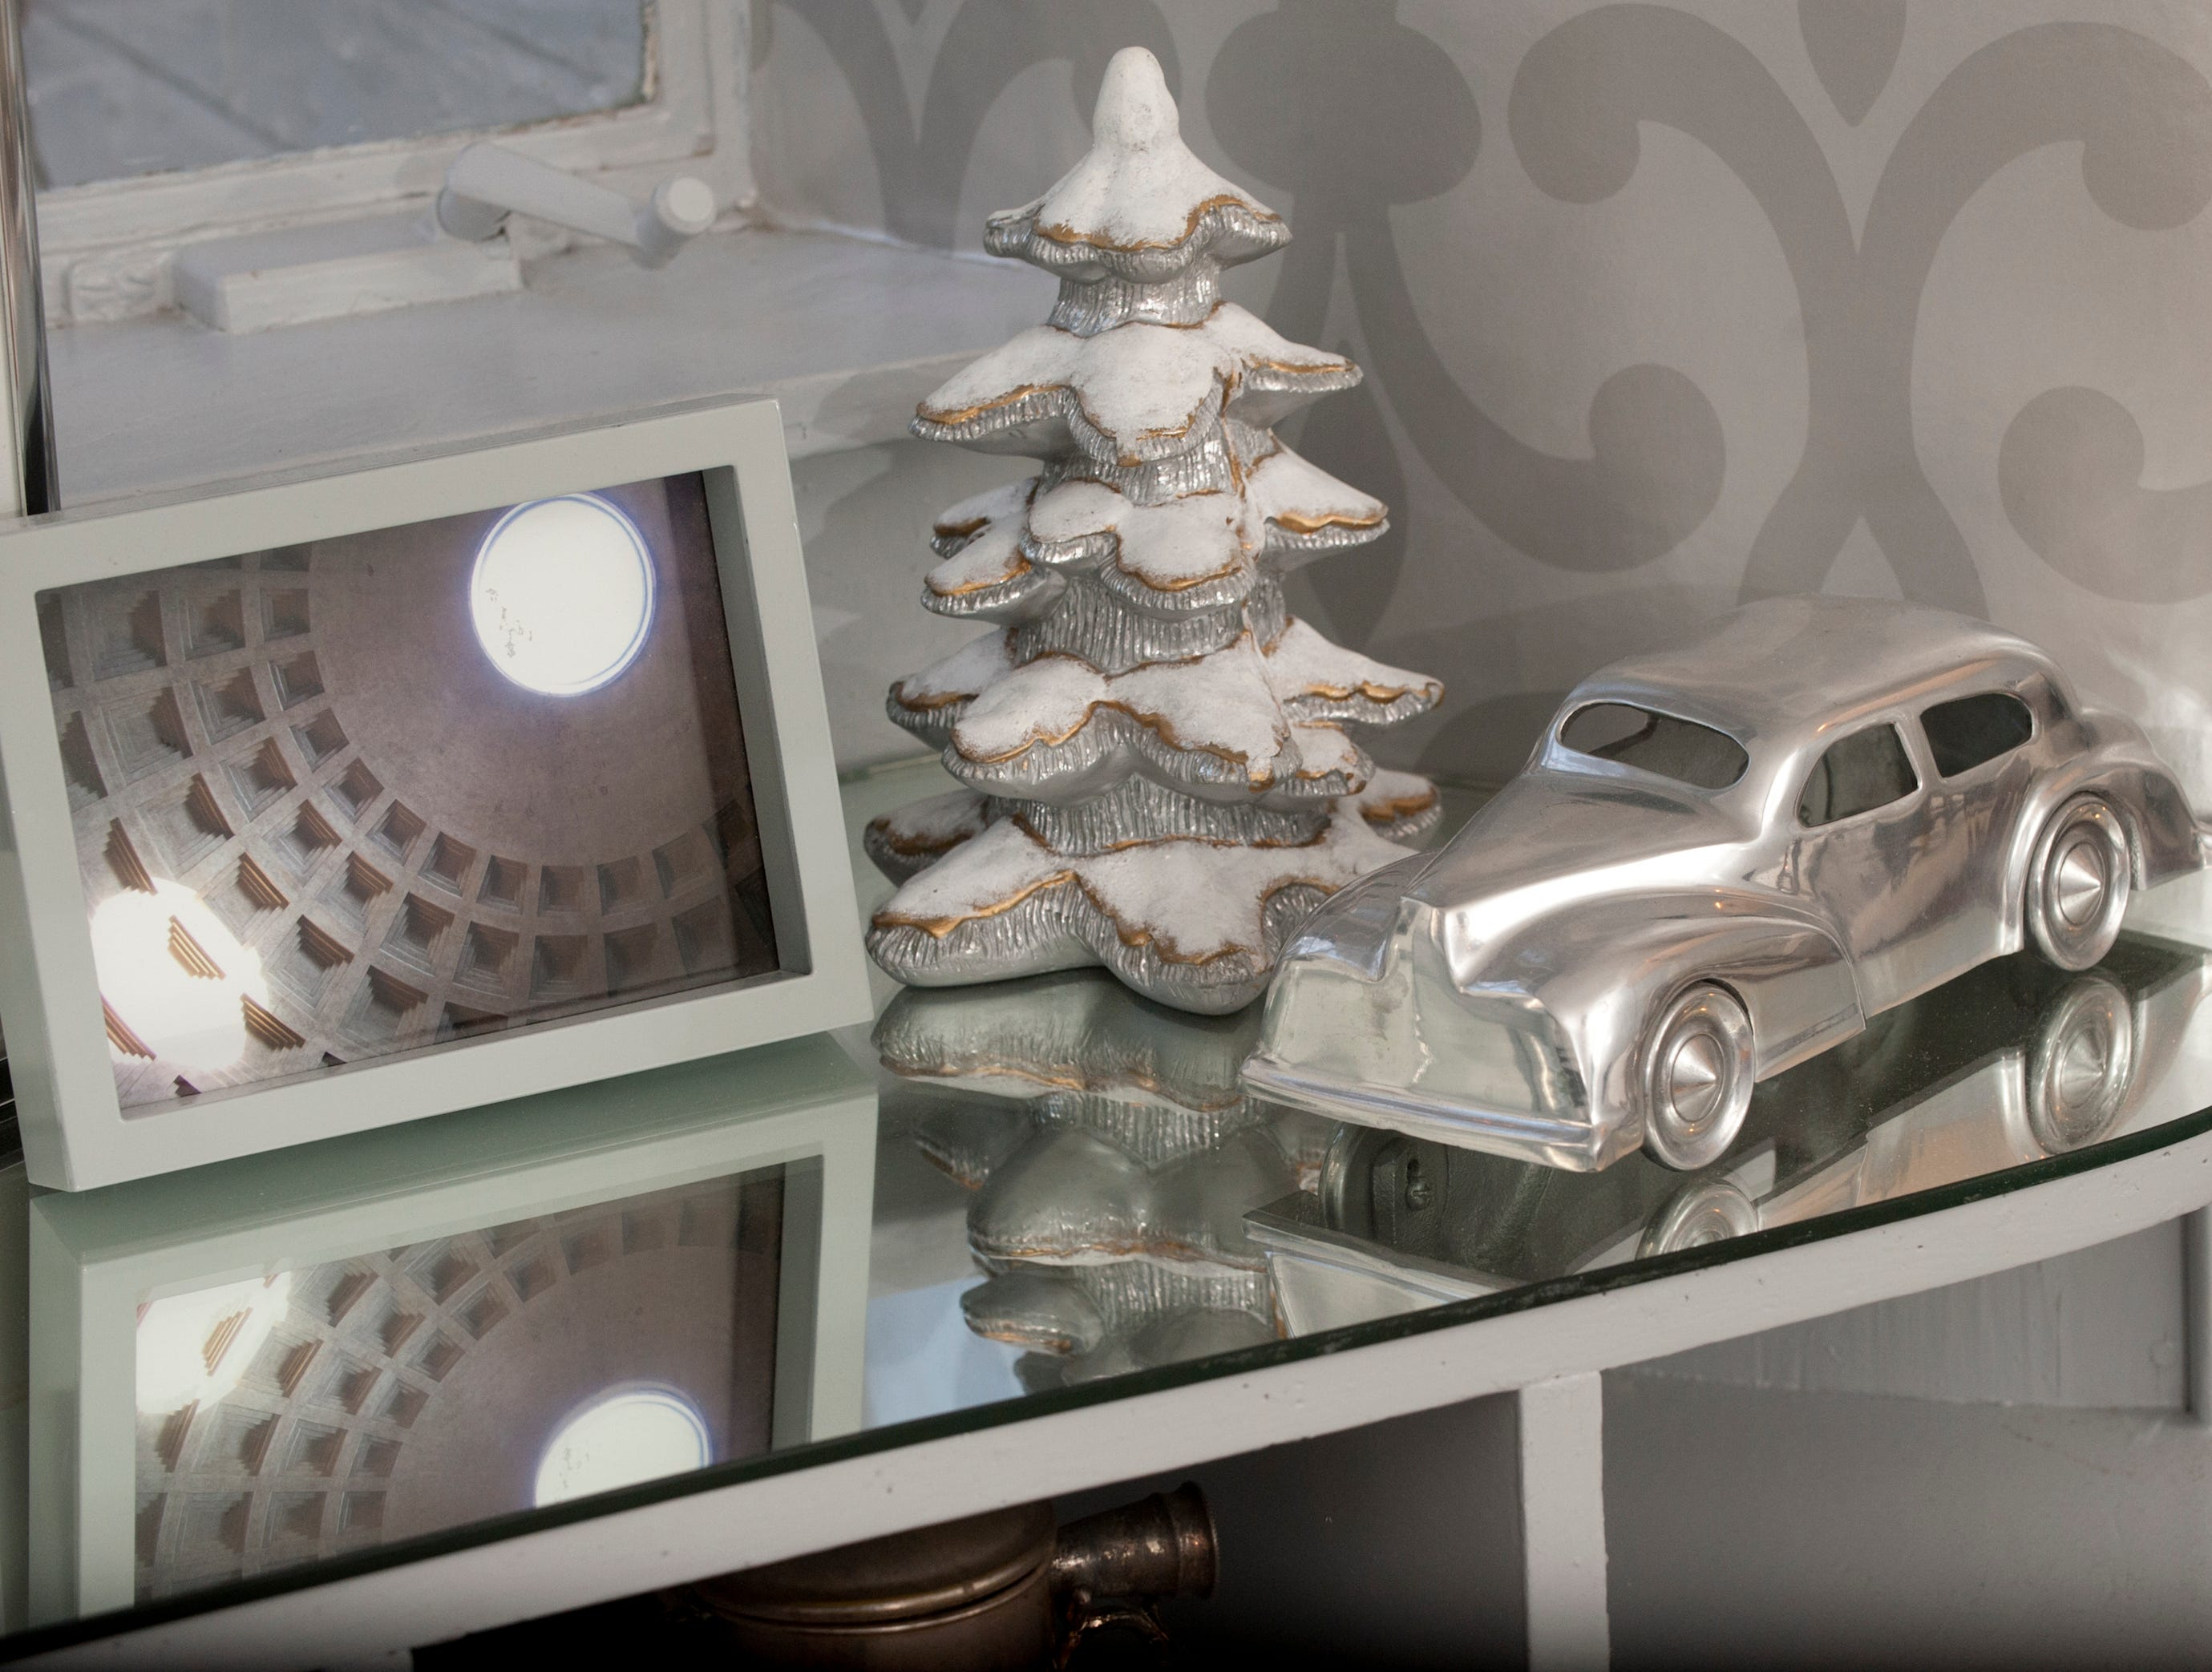 This Packard-looking car decorates the vanity in the 1st floor guest room.10 December 2018